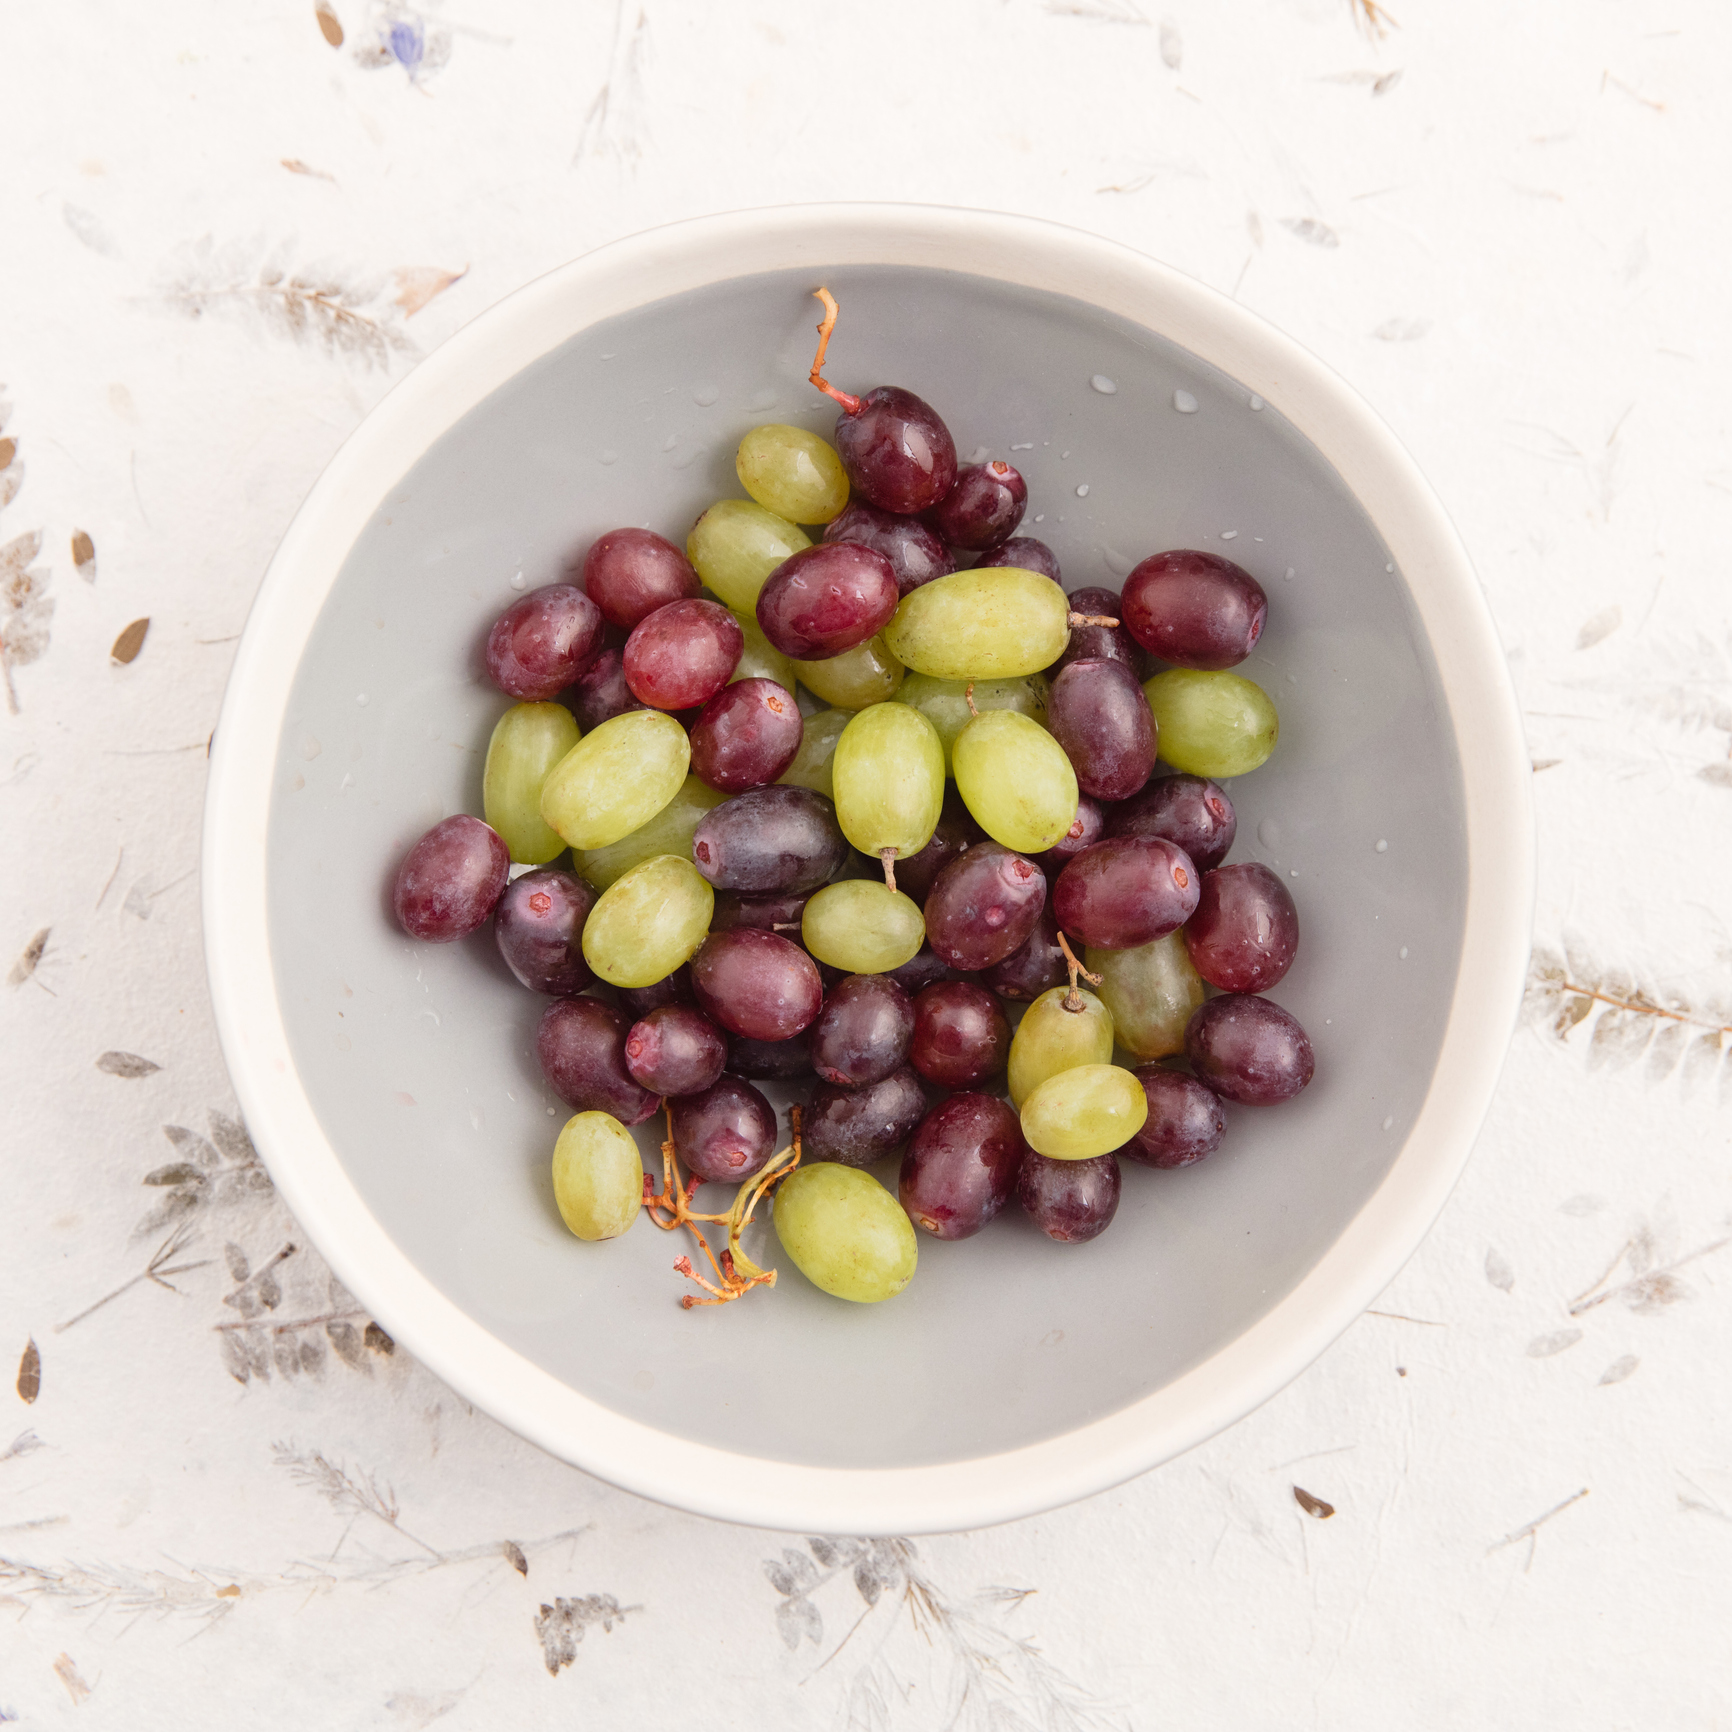 Bowl of Red and Green Grapes